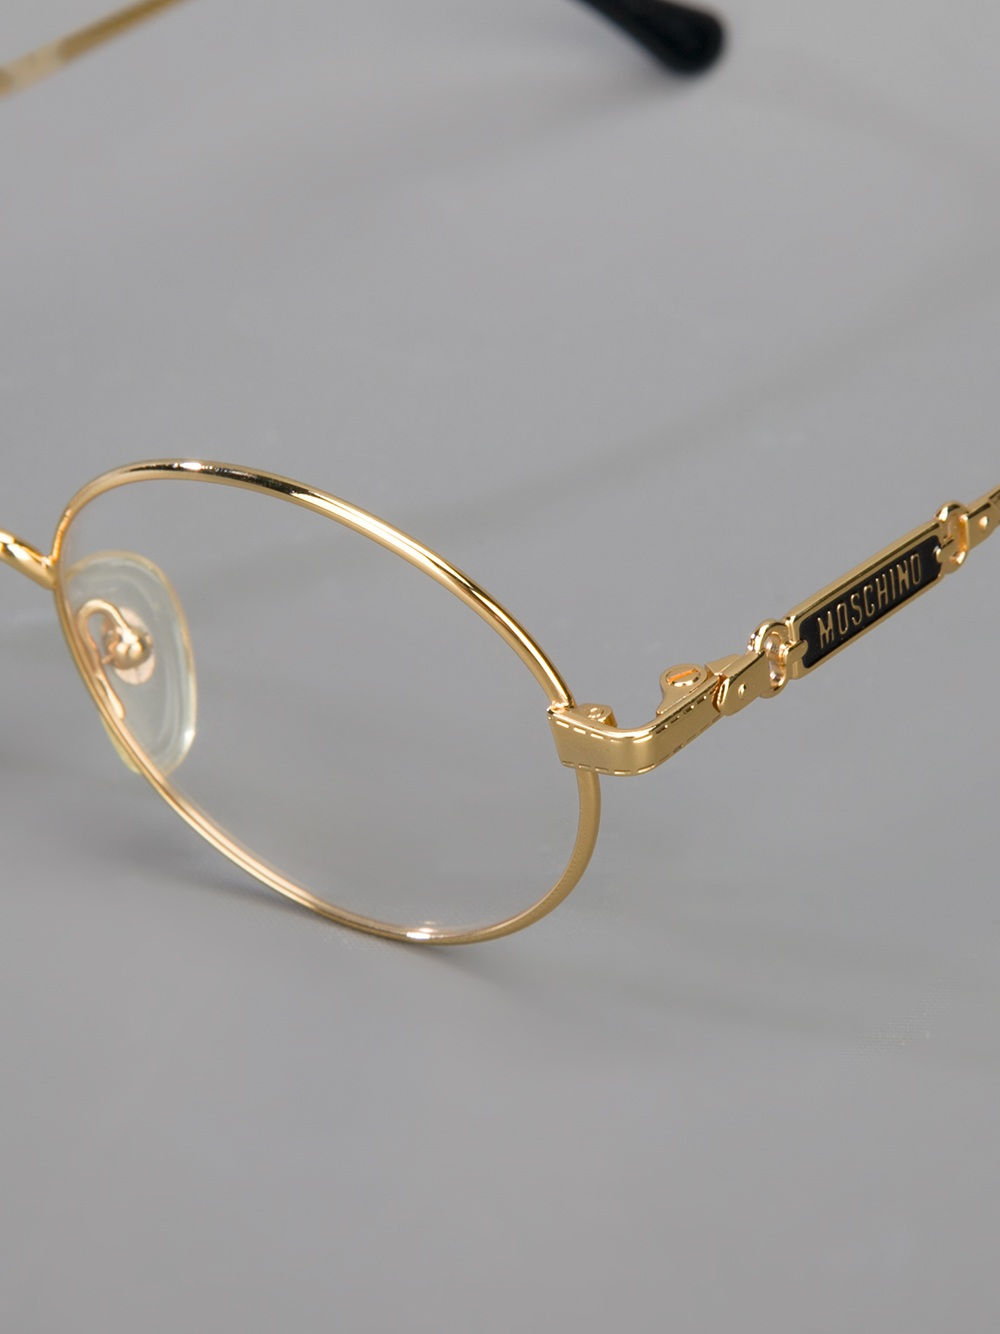 Gold Metal Glasses Frames : Moschino Round Frame Glasses in Metallic Lyst